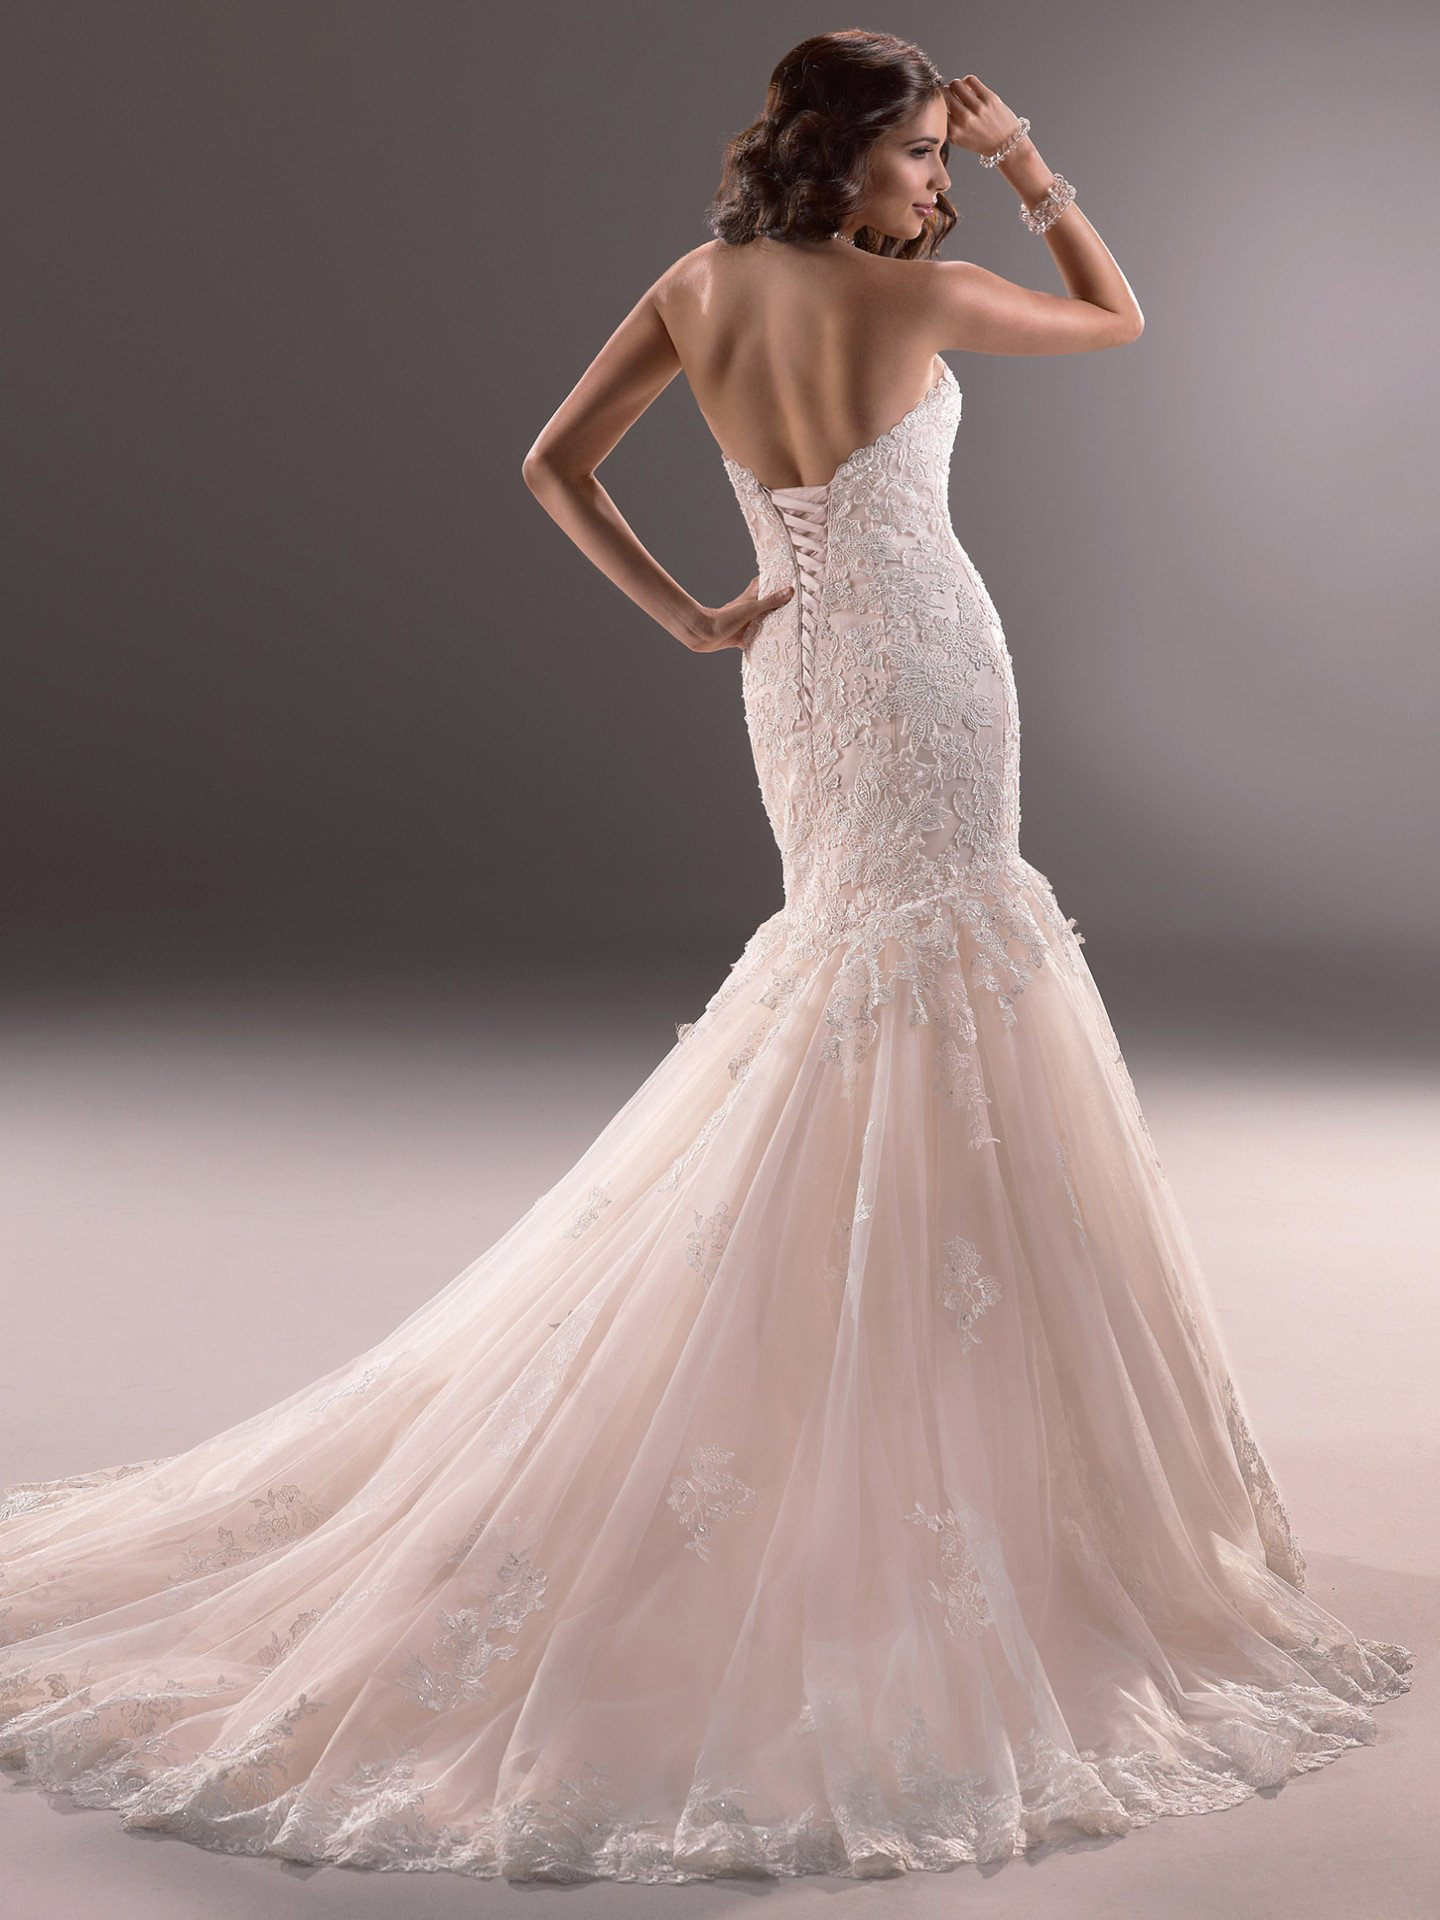 Sweetheart Neckline Lace And Tulle Fit And Flare Wedding Dress ...